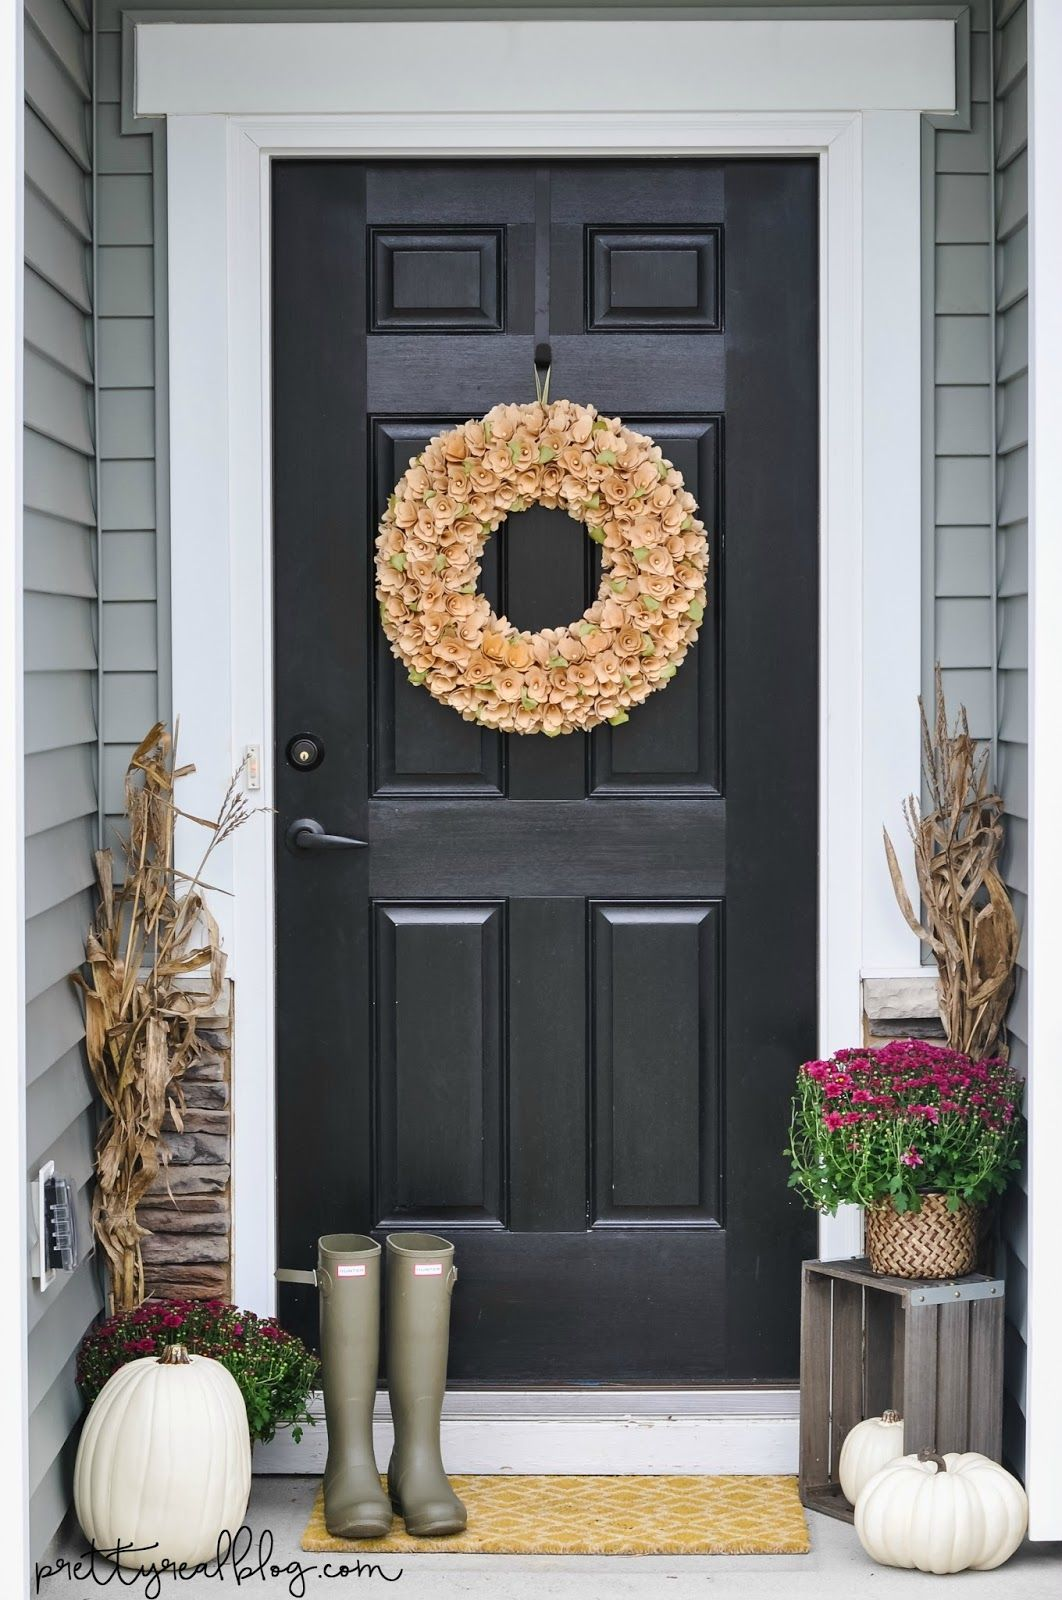 Pretty Real A Few Splashes Of Fall Mantle Pillows And Front Door Decor Fall Door Decorations Front Door Fall Decor Front Door Decor